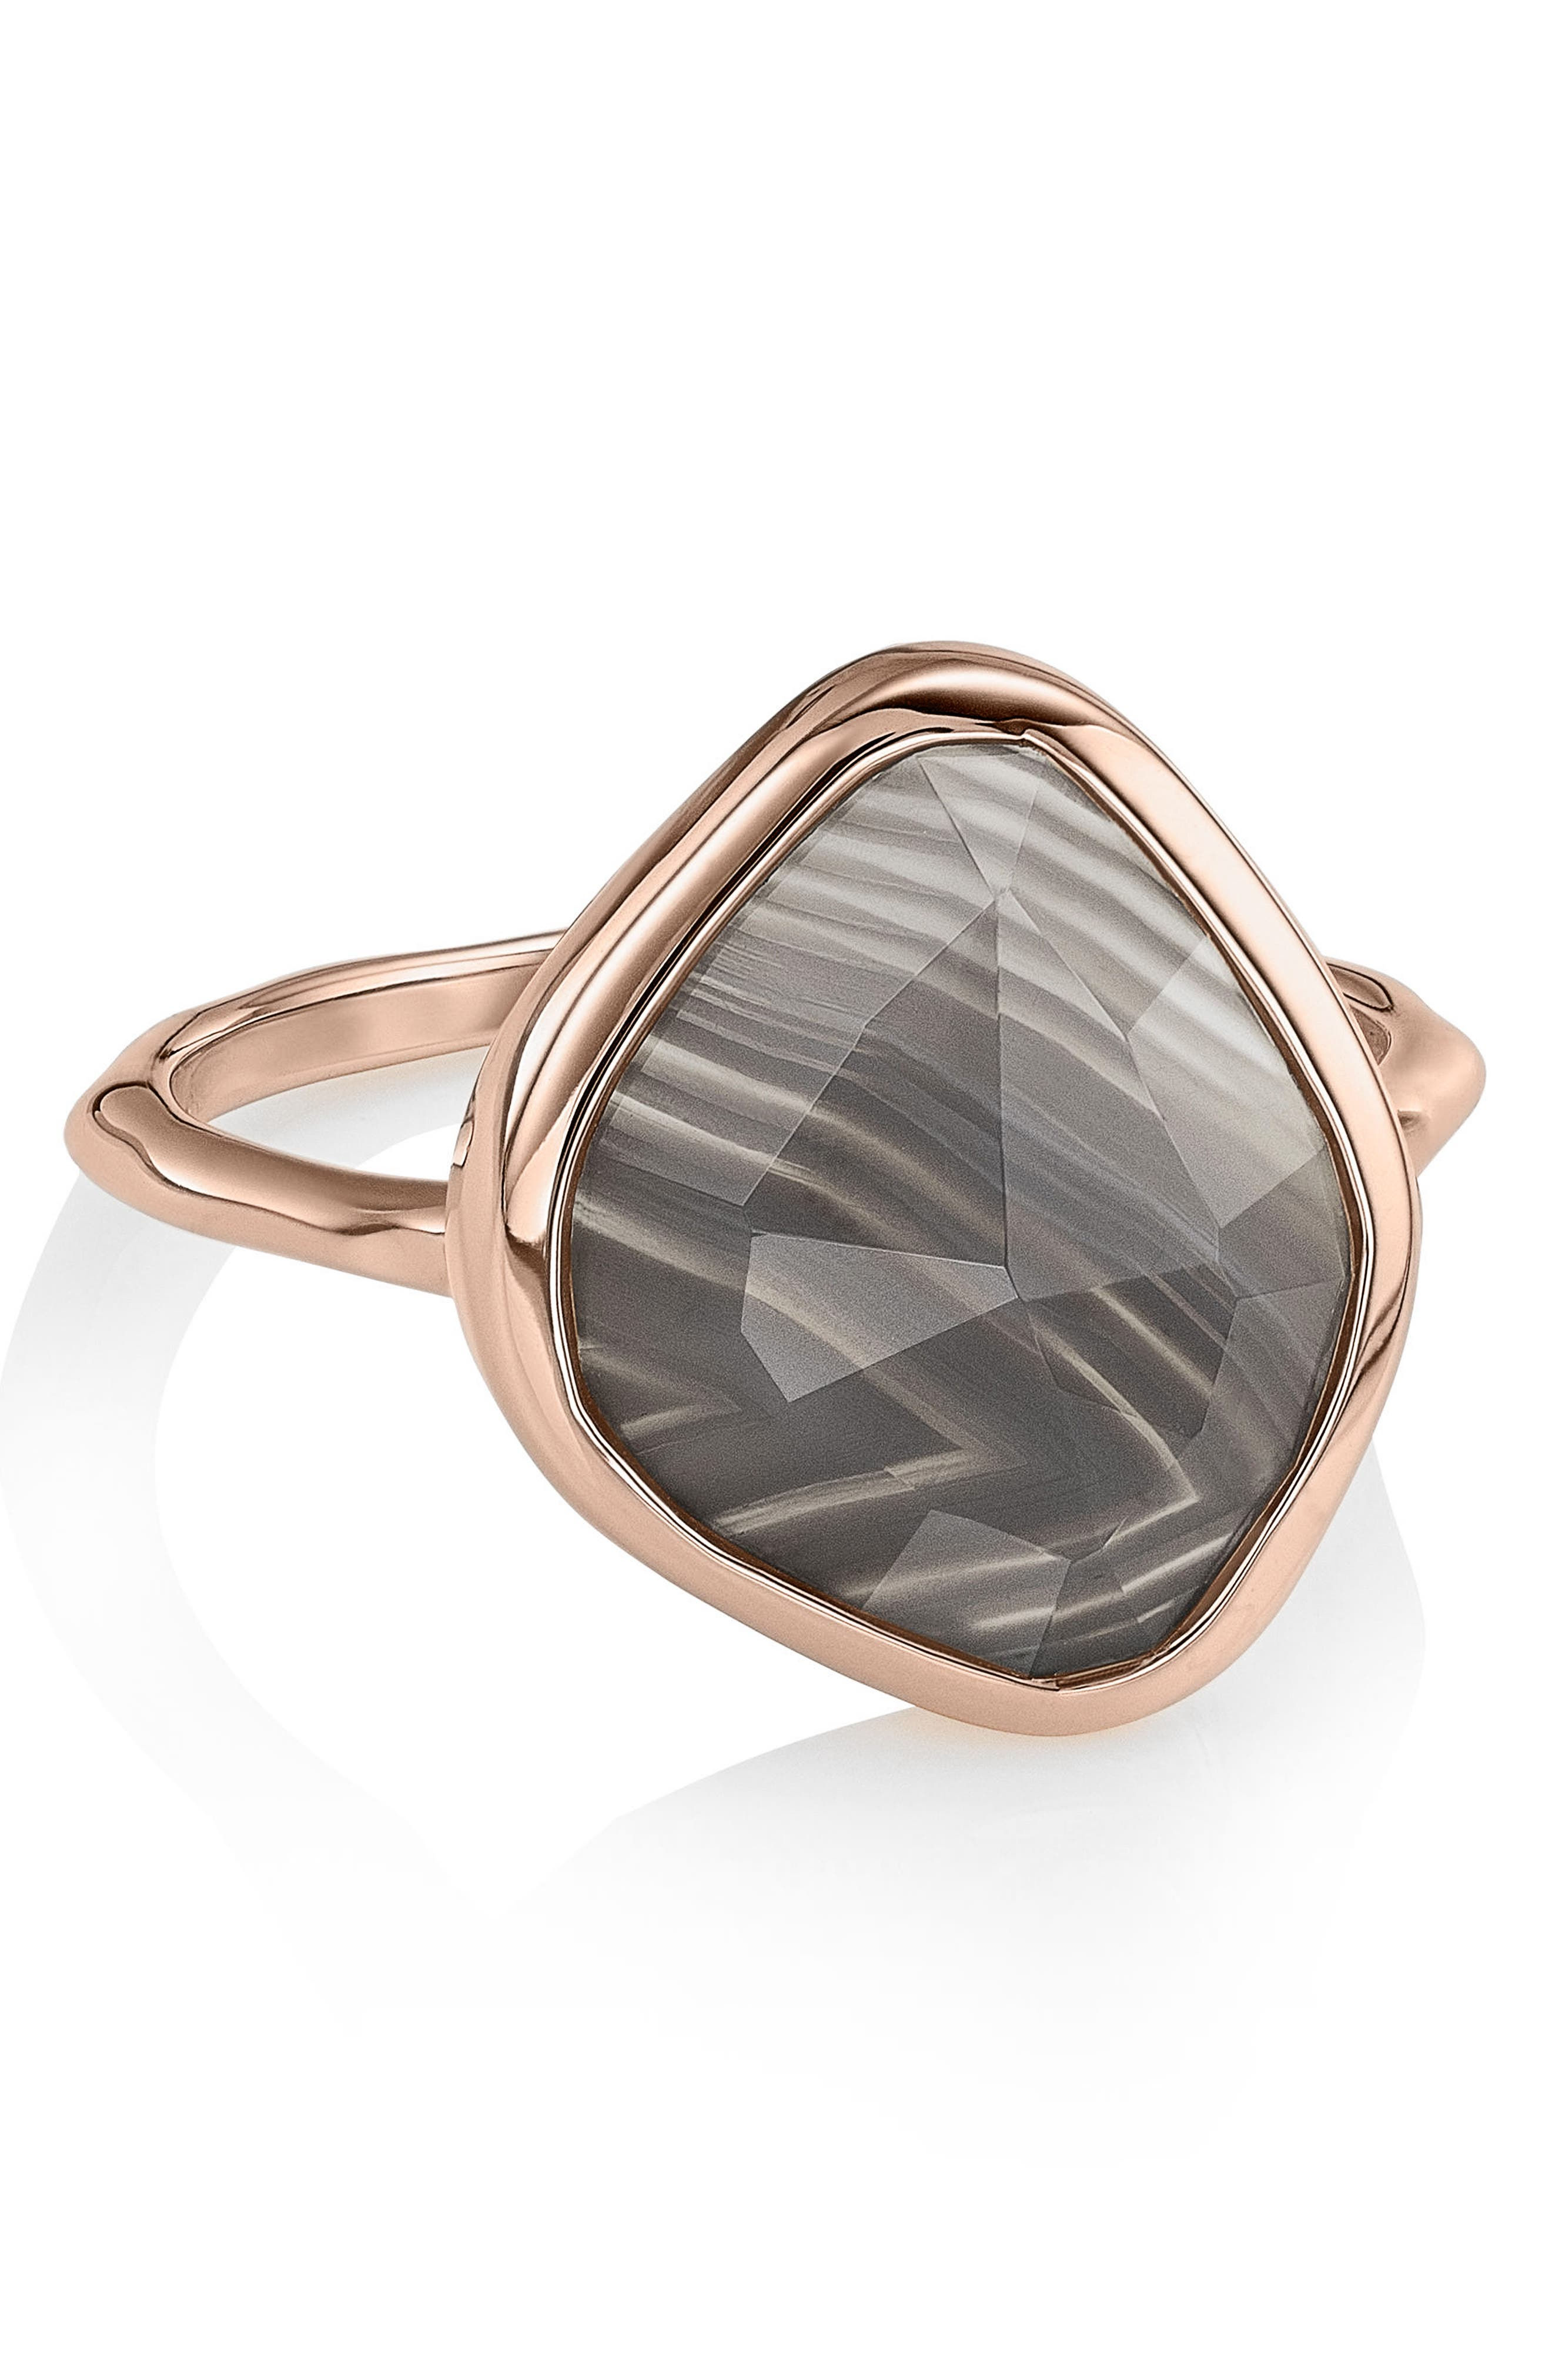 Siren Nugget Semiprecious Stone Ring,                         Main,                         color, 020